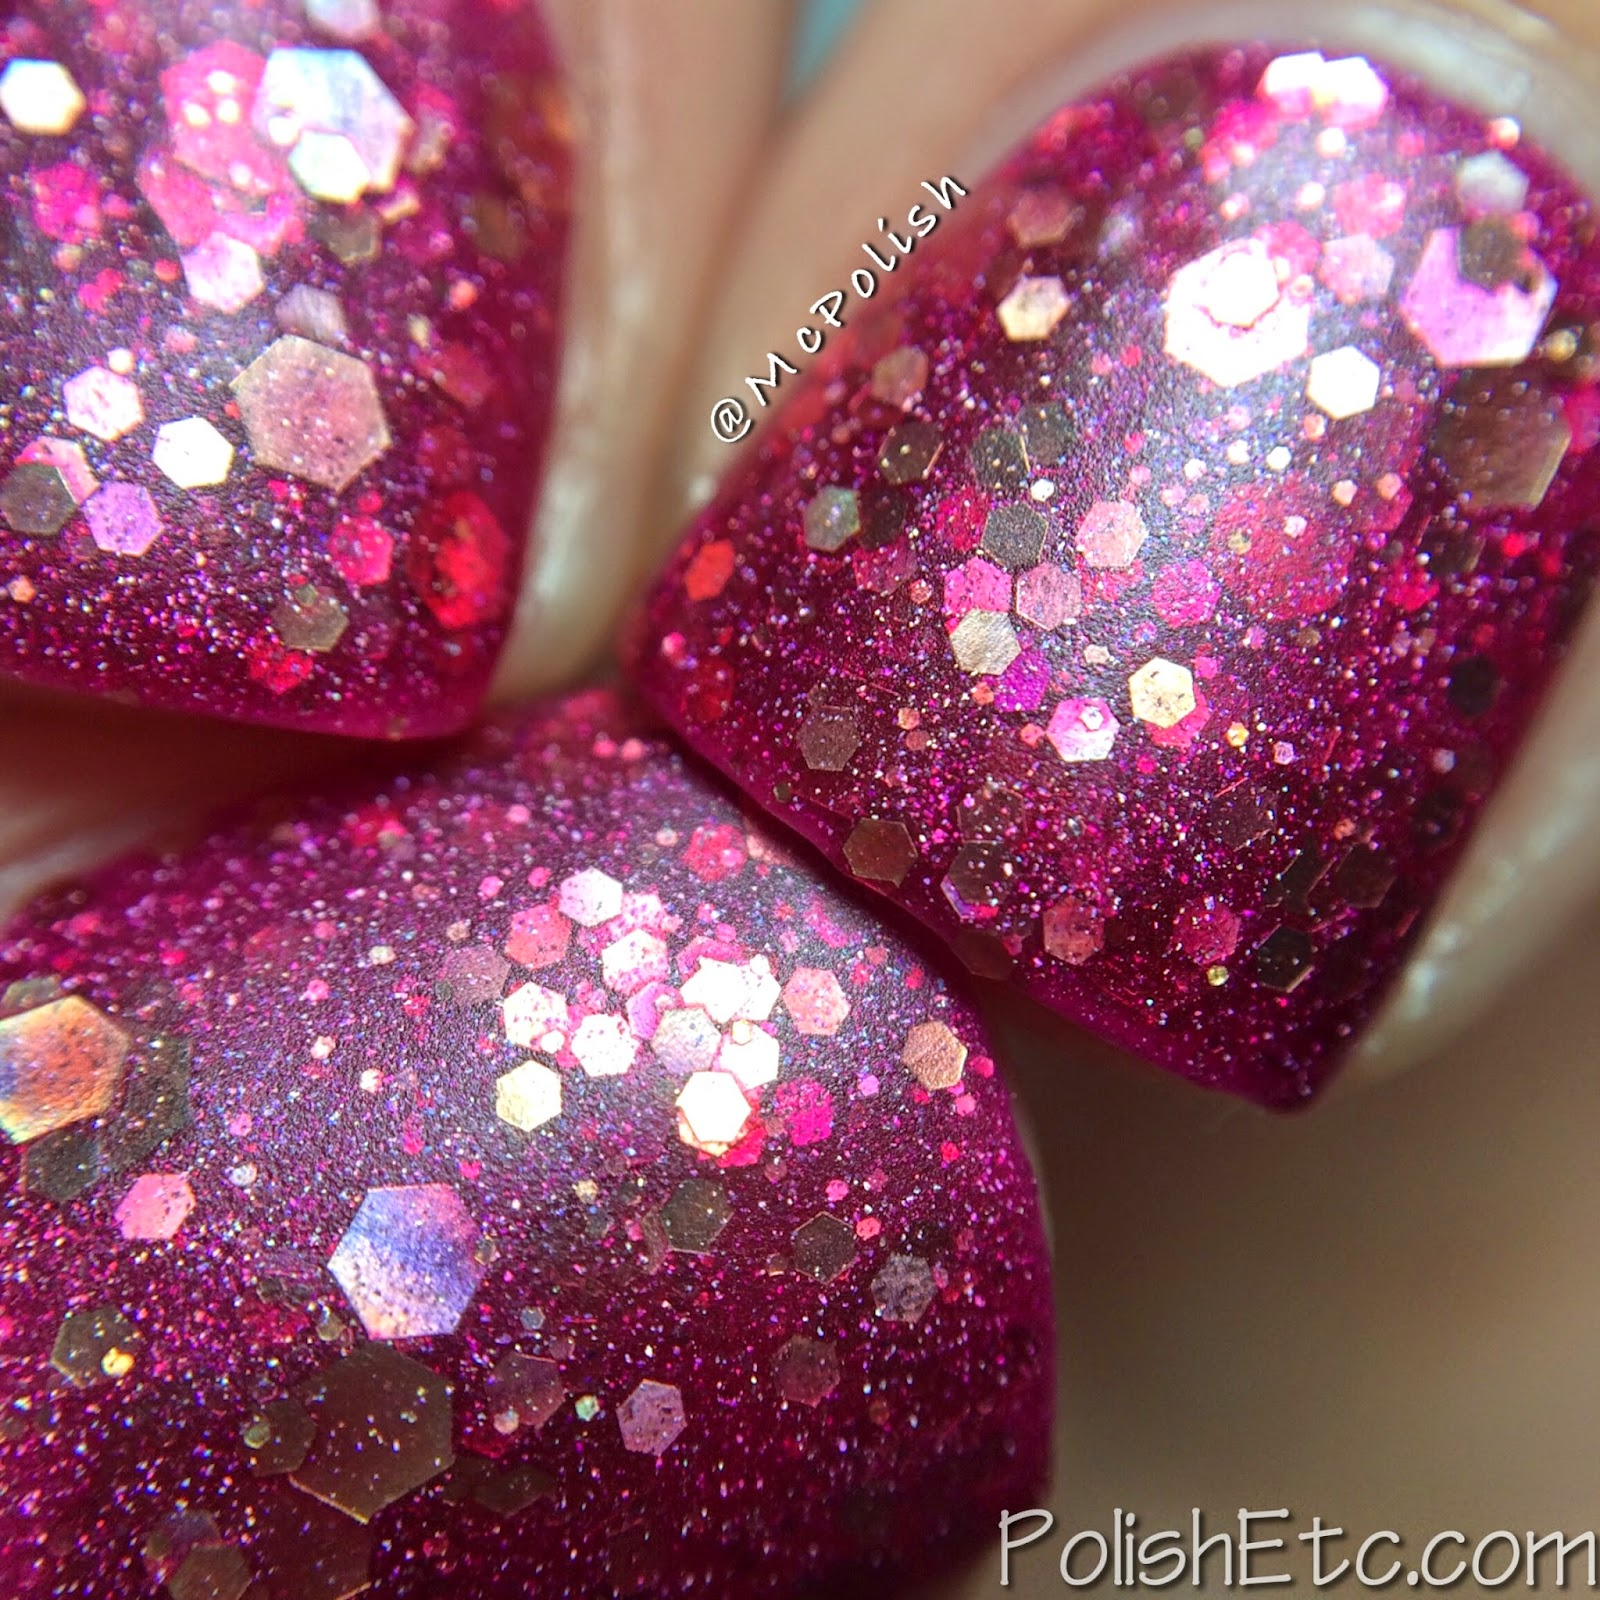 Nayll custom nail polishes - McPolish - Dawn - Matte Macro